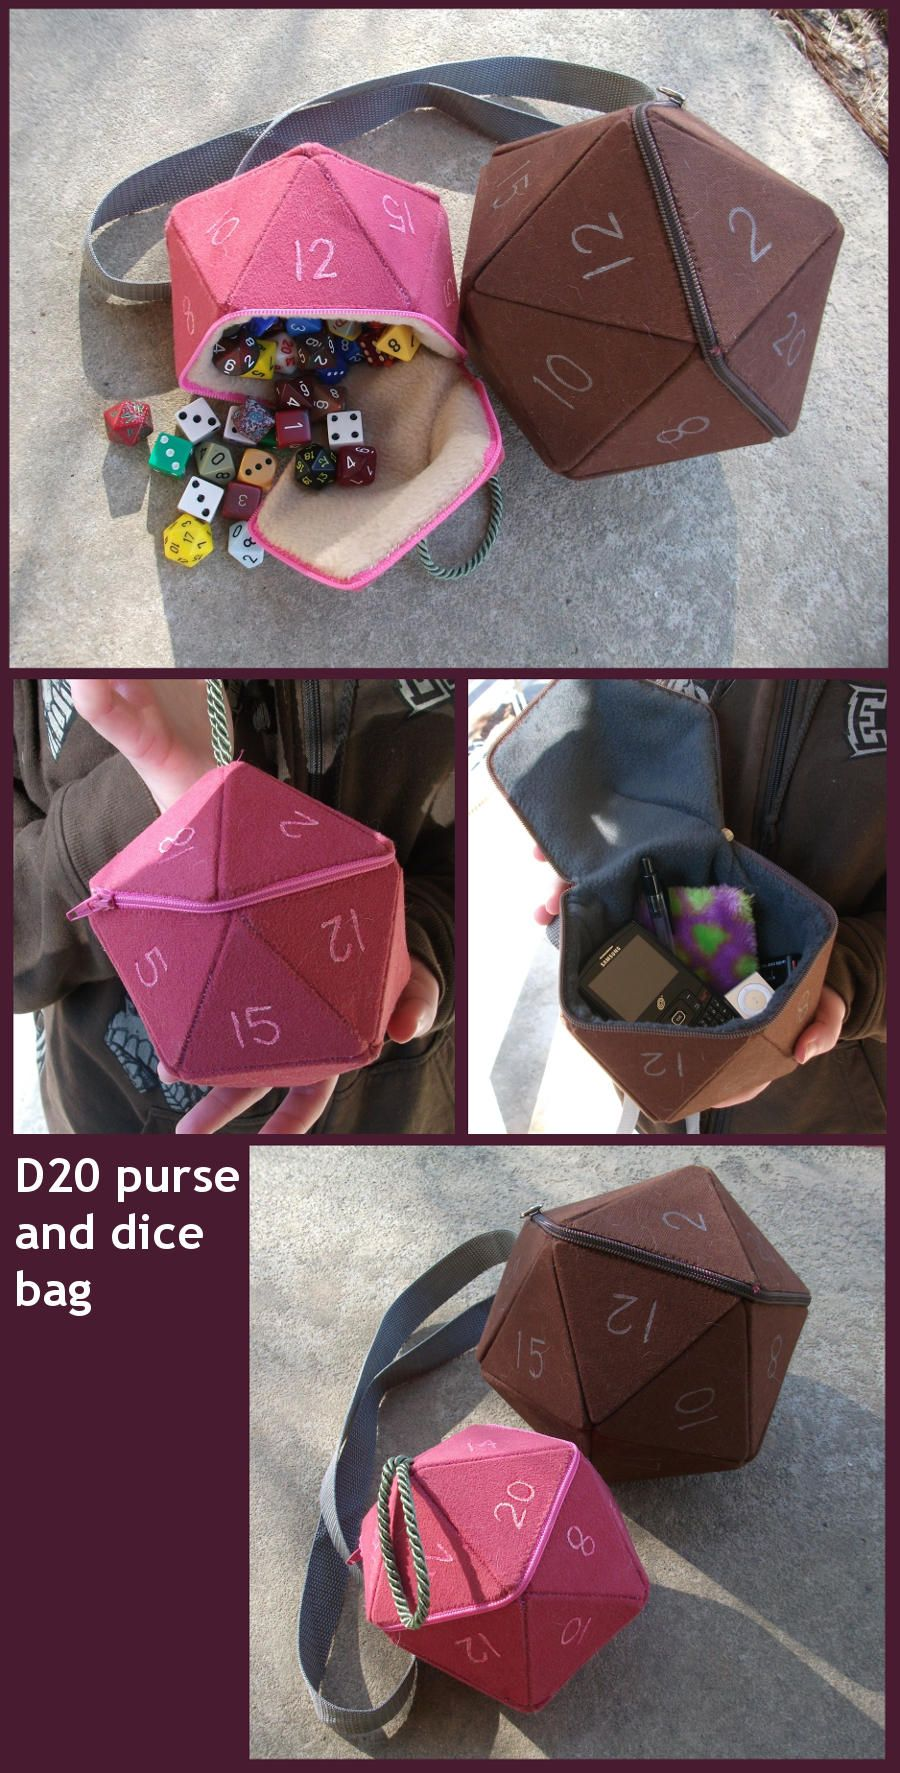 D20 purse and dice bag prototypes by angermuffin on DeviantArt